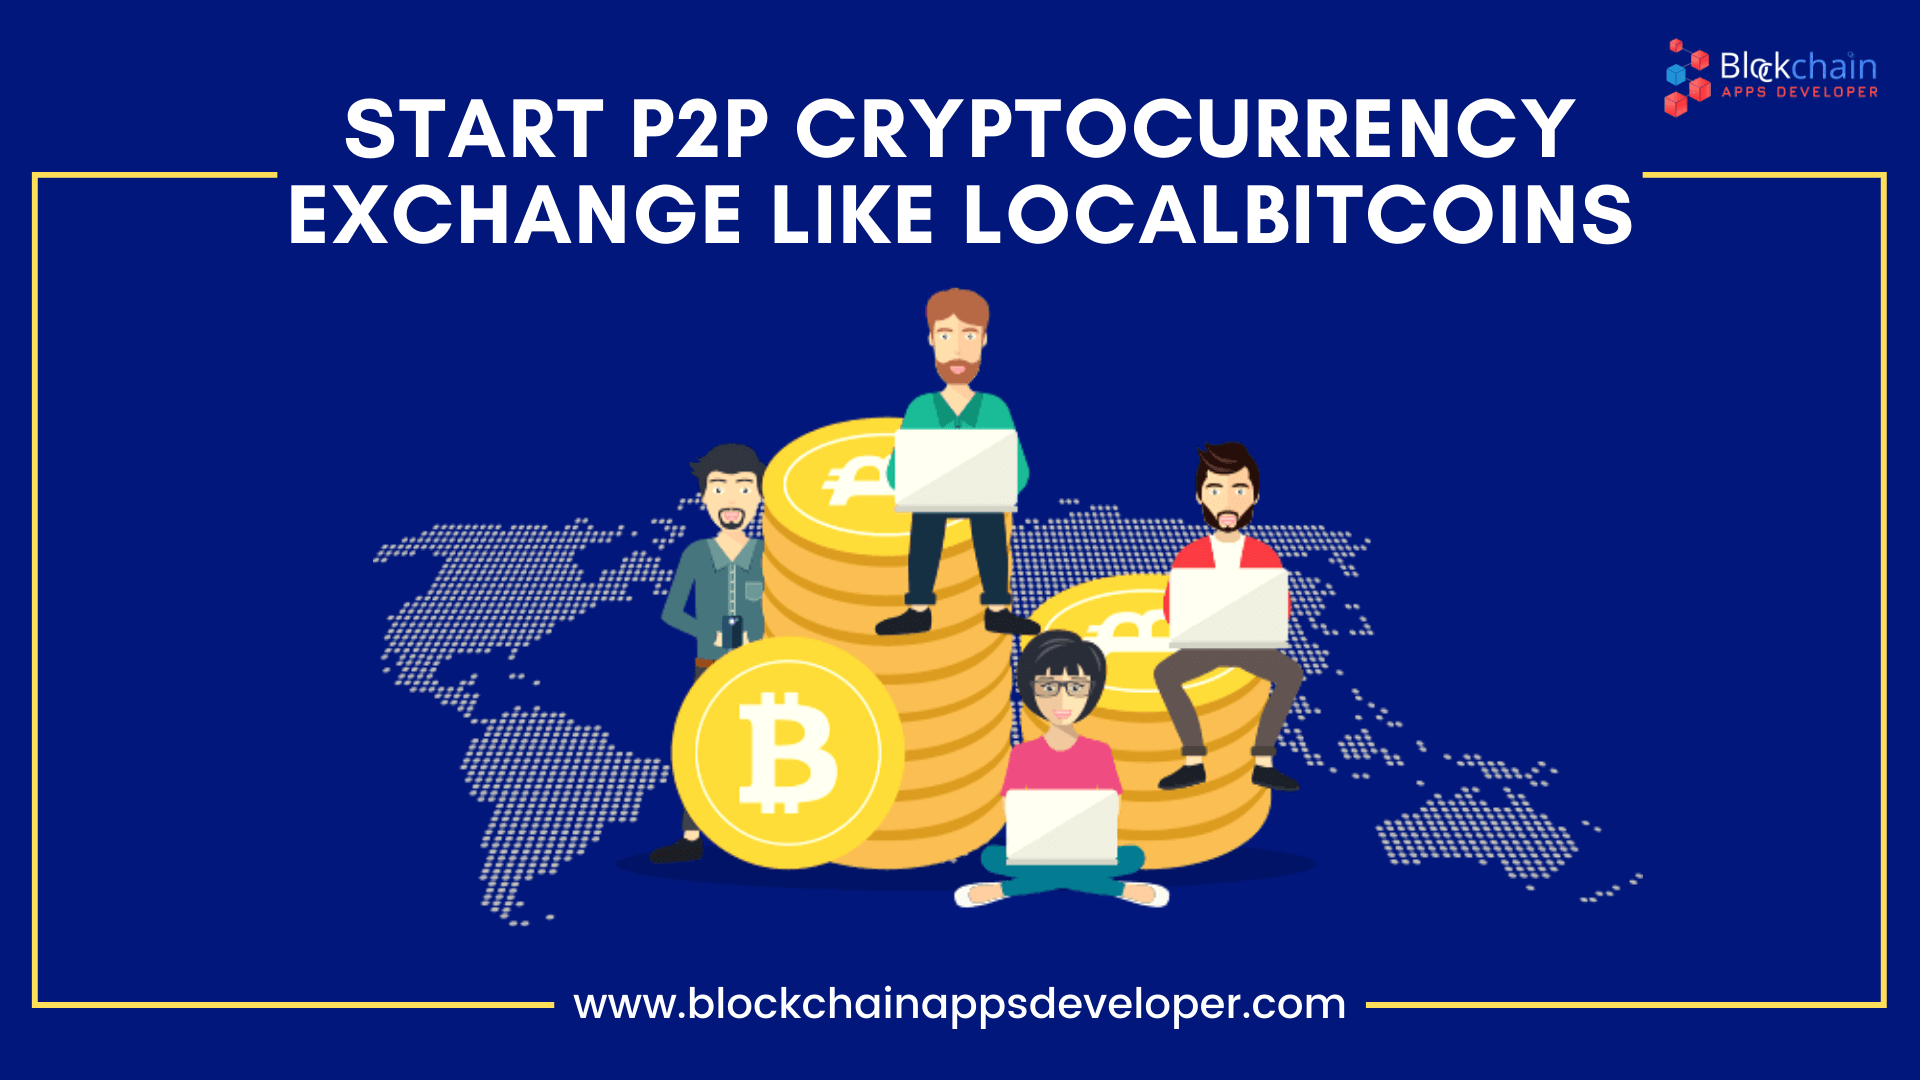 How to Start P2P Cryptocurrency Exchange like Localbitcoins?